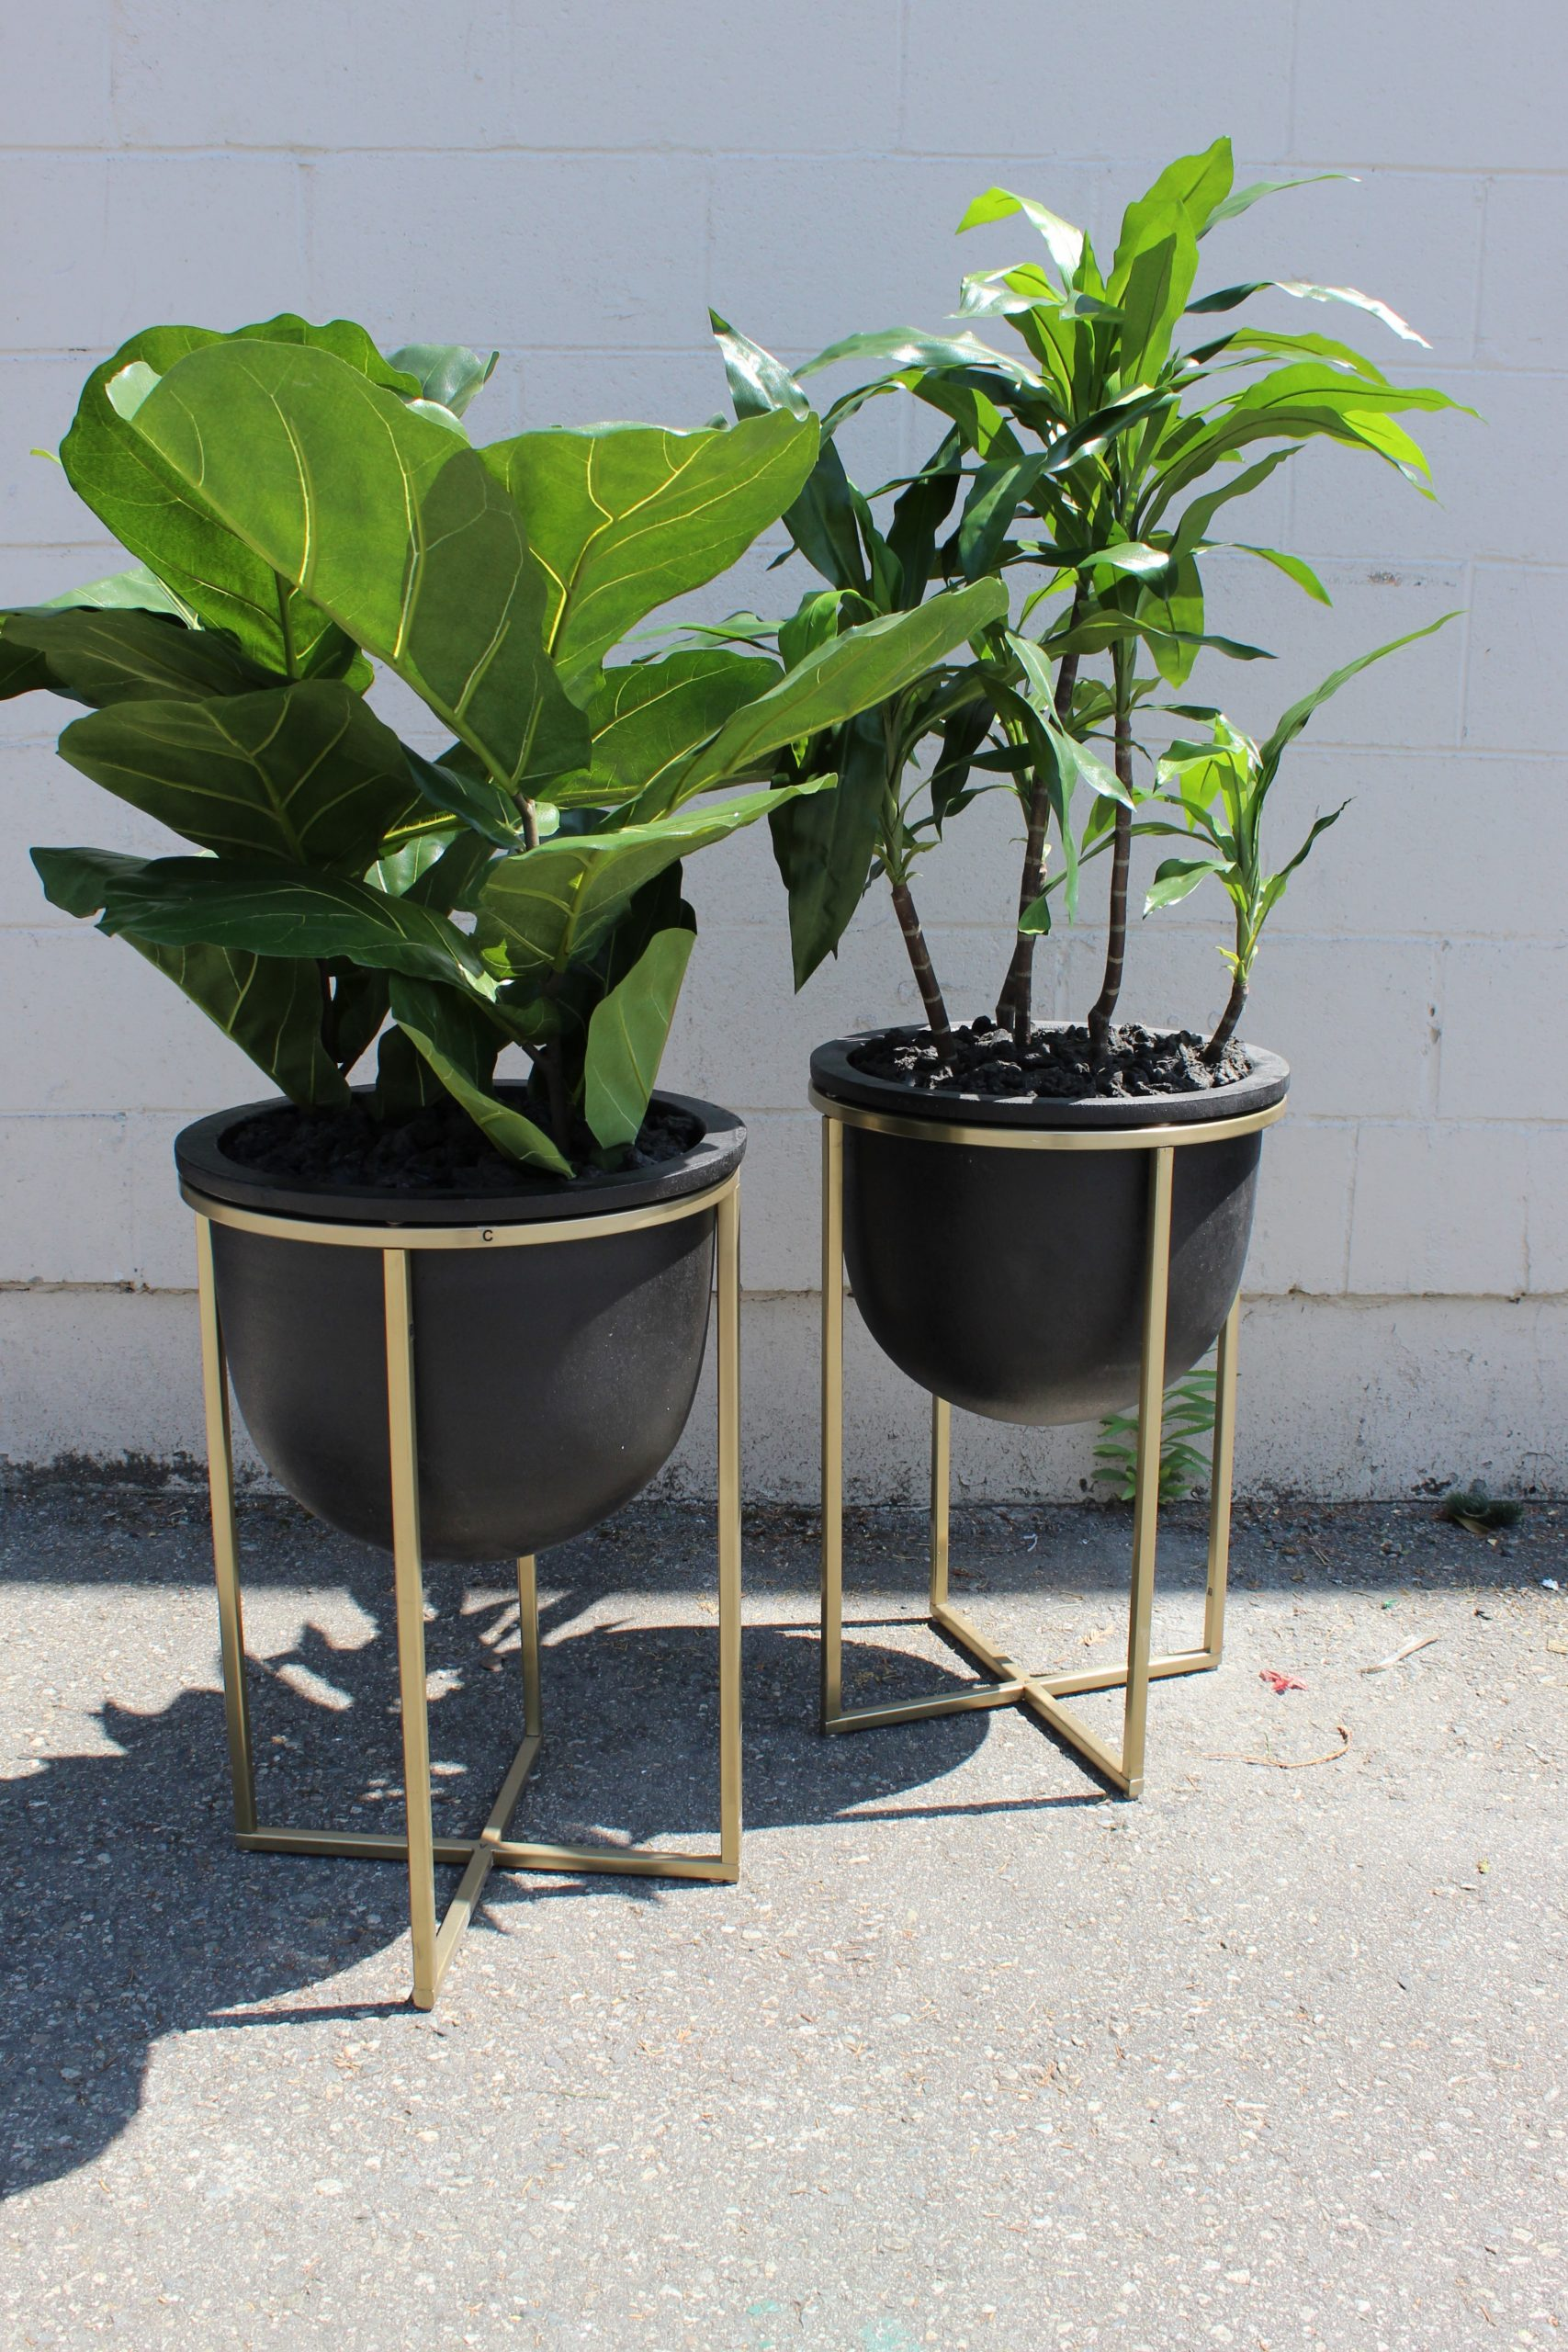 Black and gold contemporary planter and planter stands with artificial fiddle leaf and dracaena plants for restaurant decor